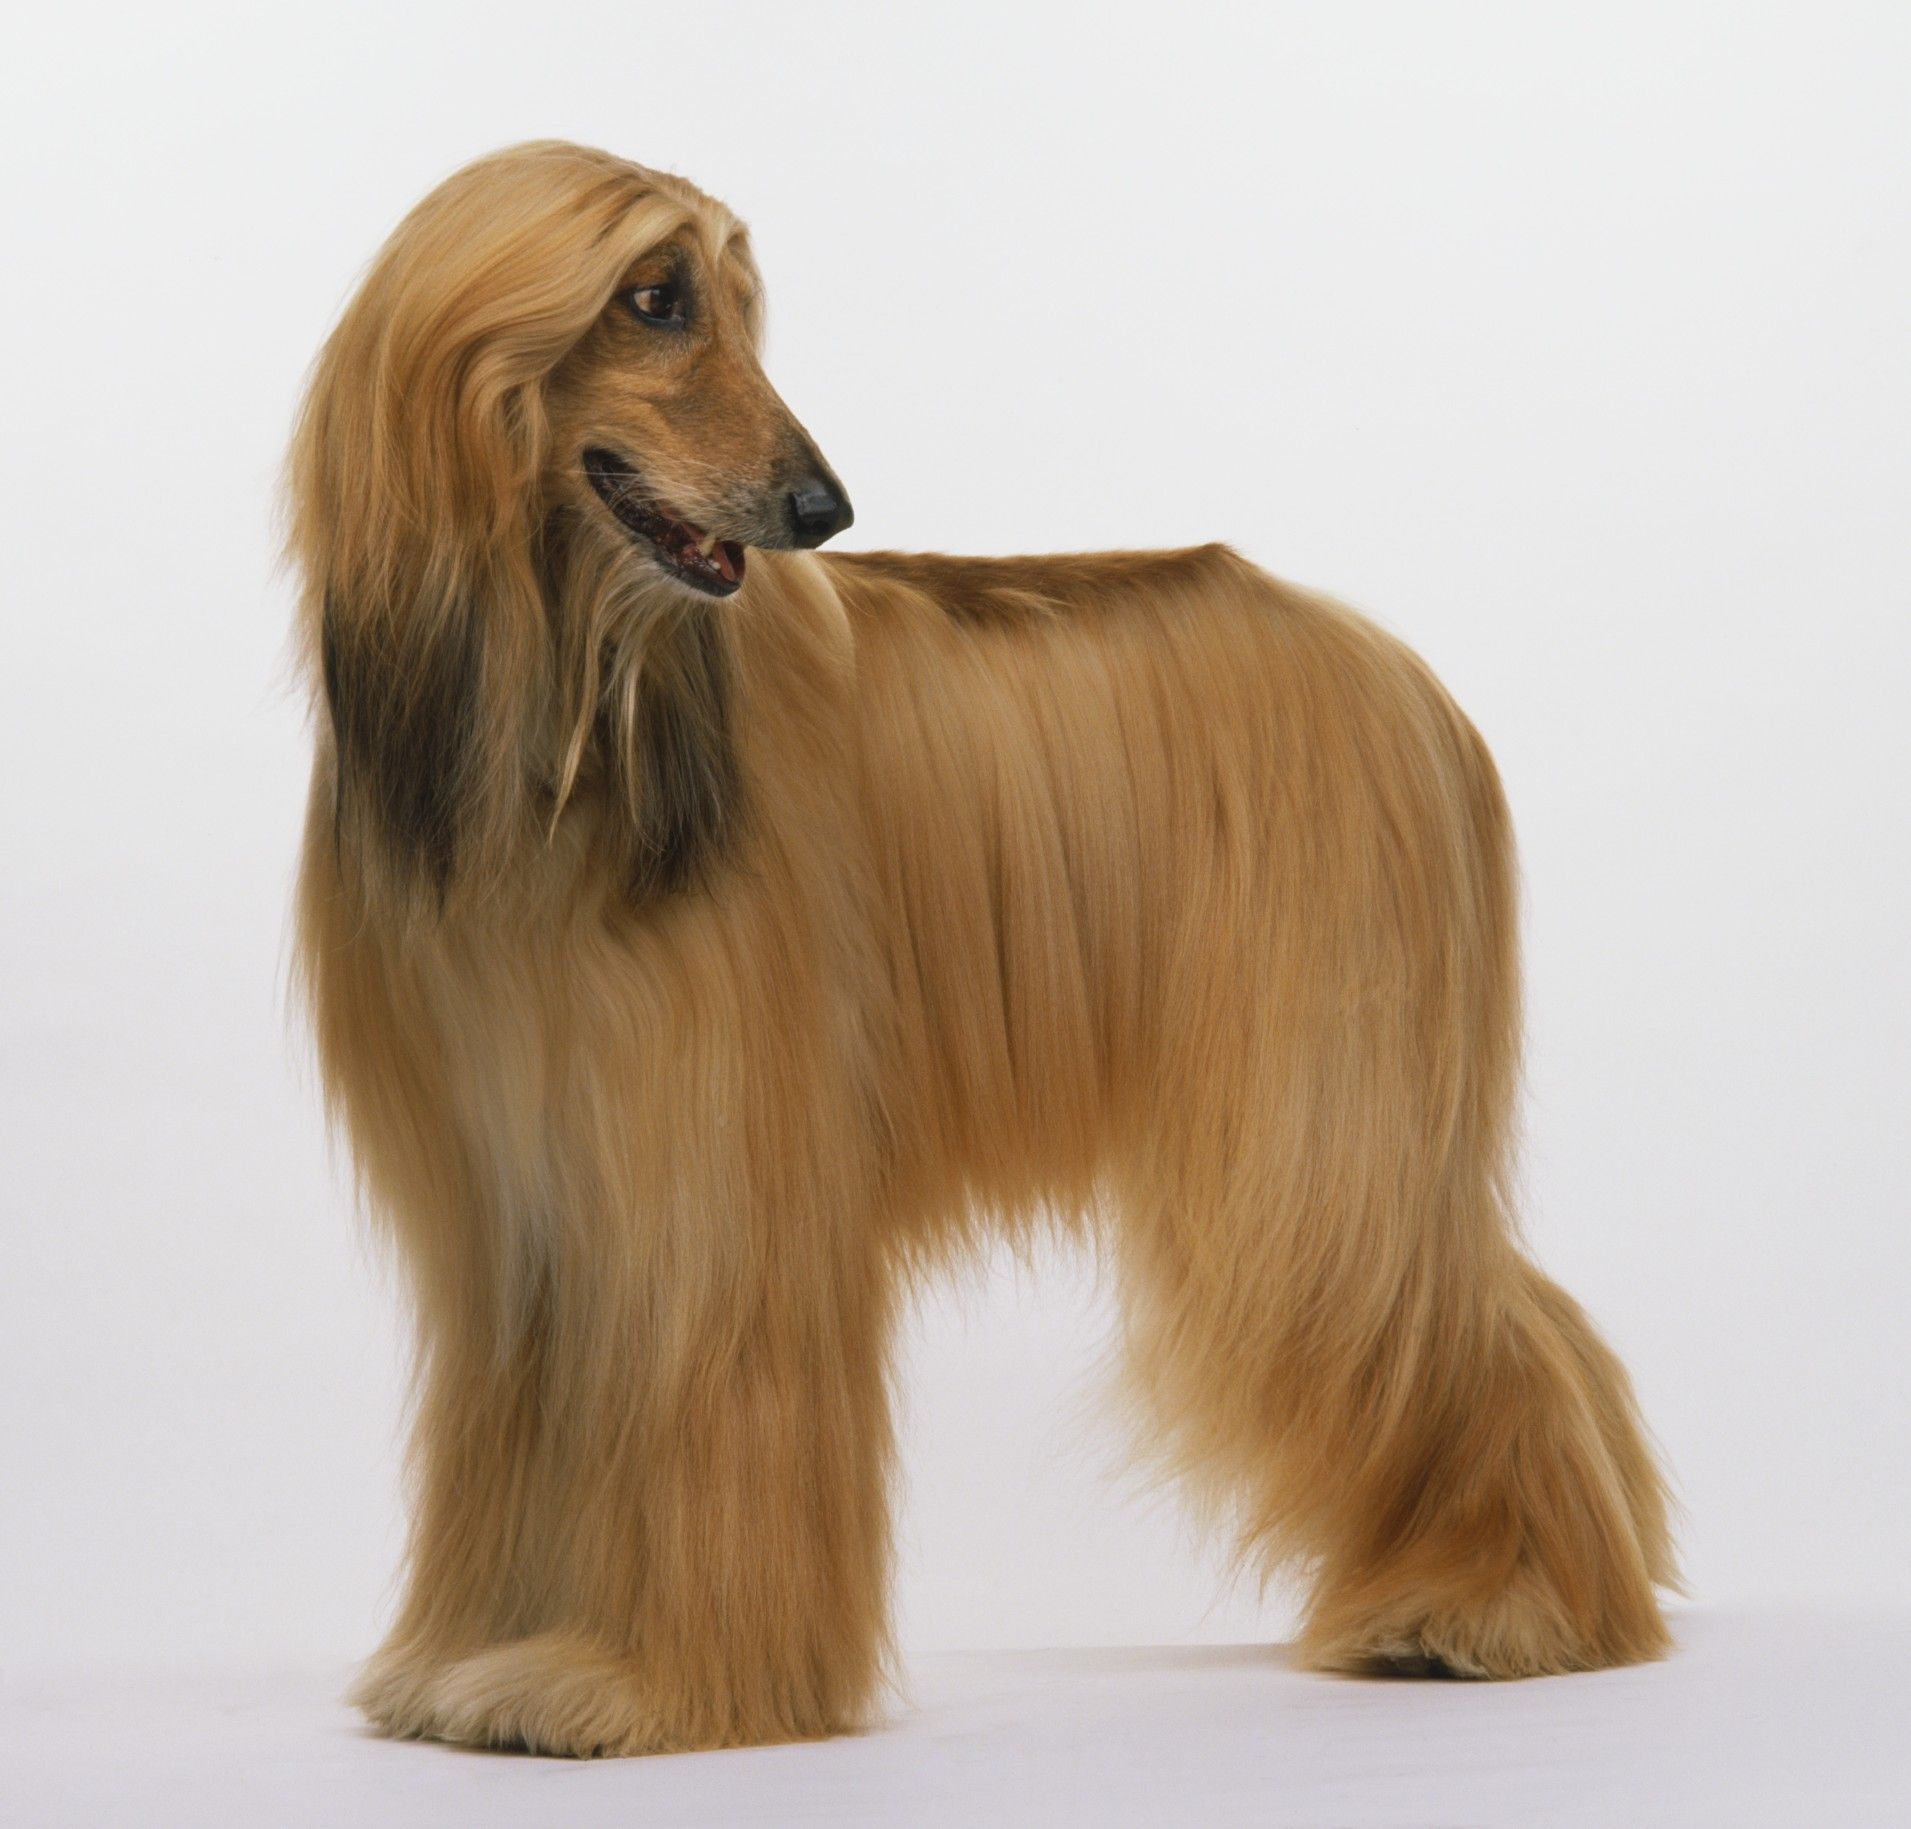 Afghan Hound The Afghan Hound Originated In Afghanistan With